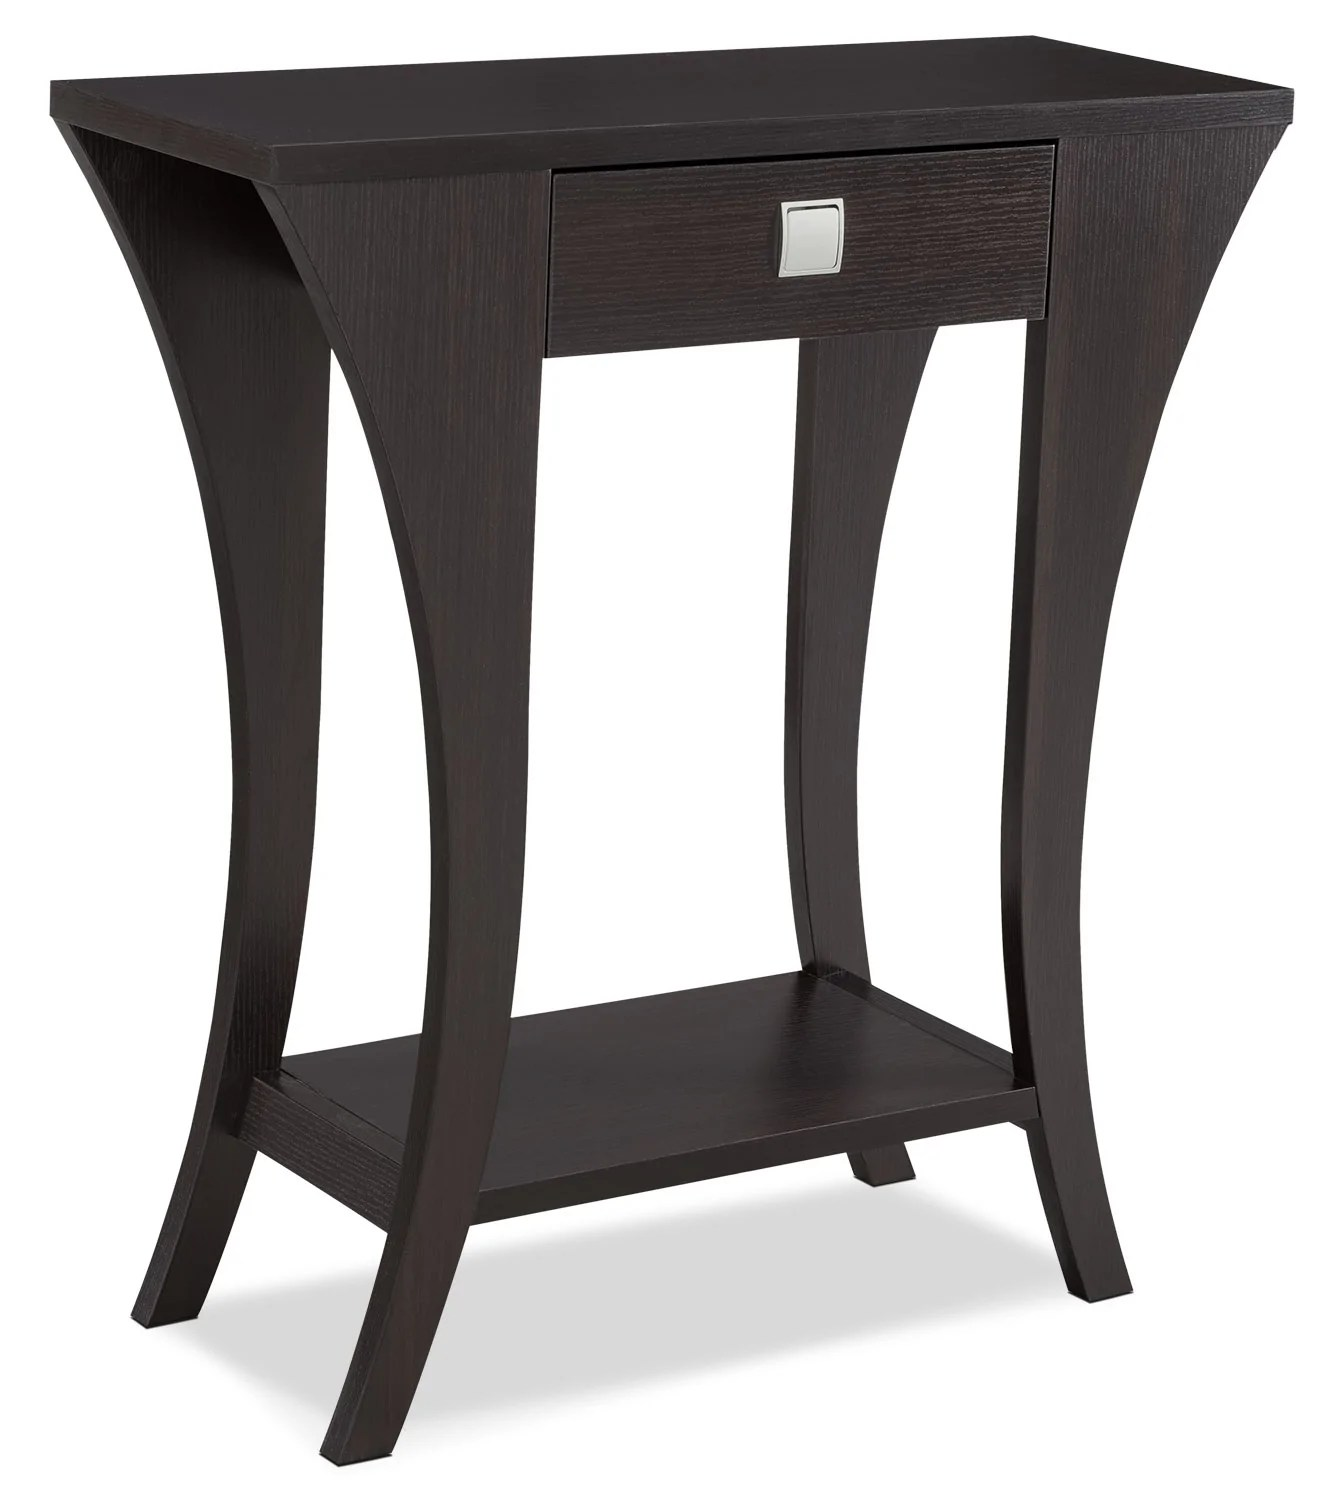 sofa table size round dining with seating manila console the brick tableconsole